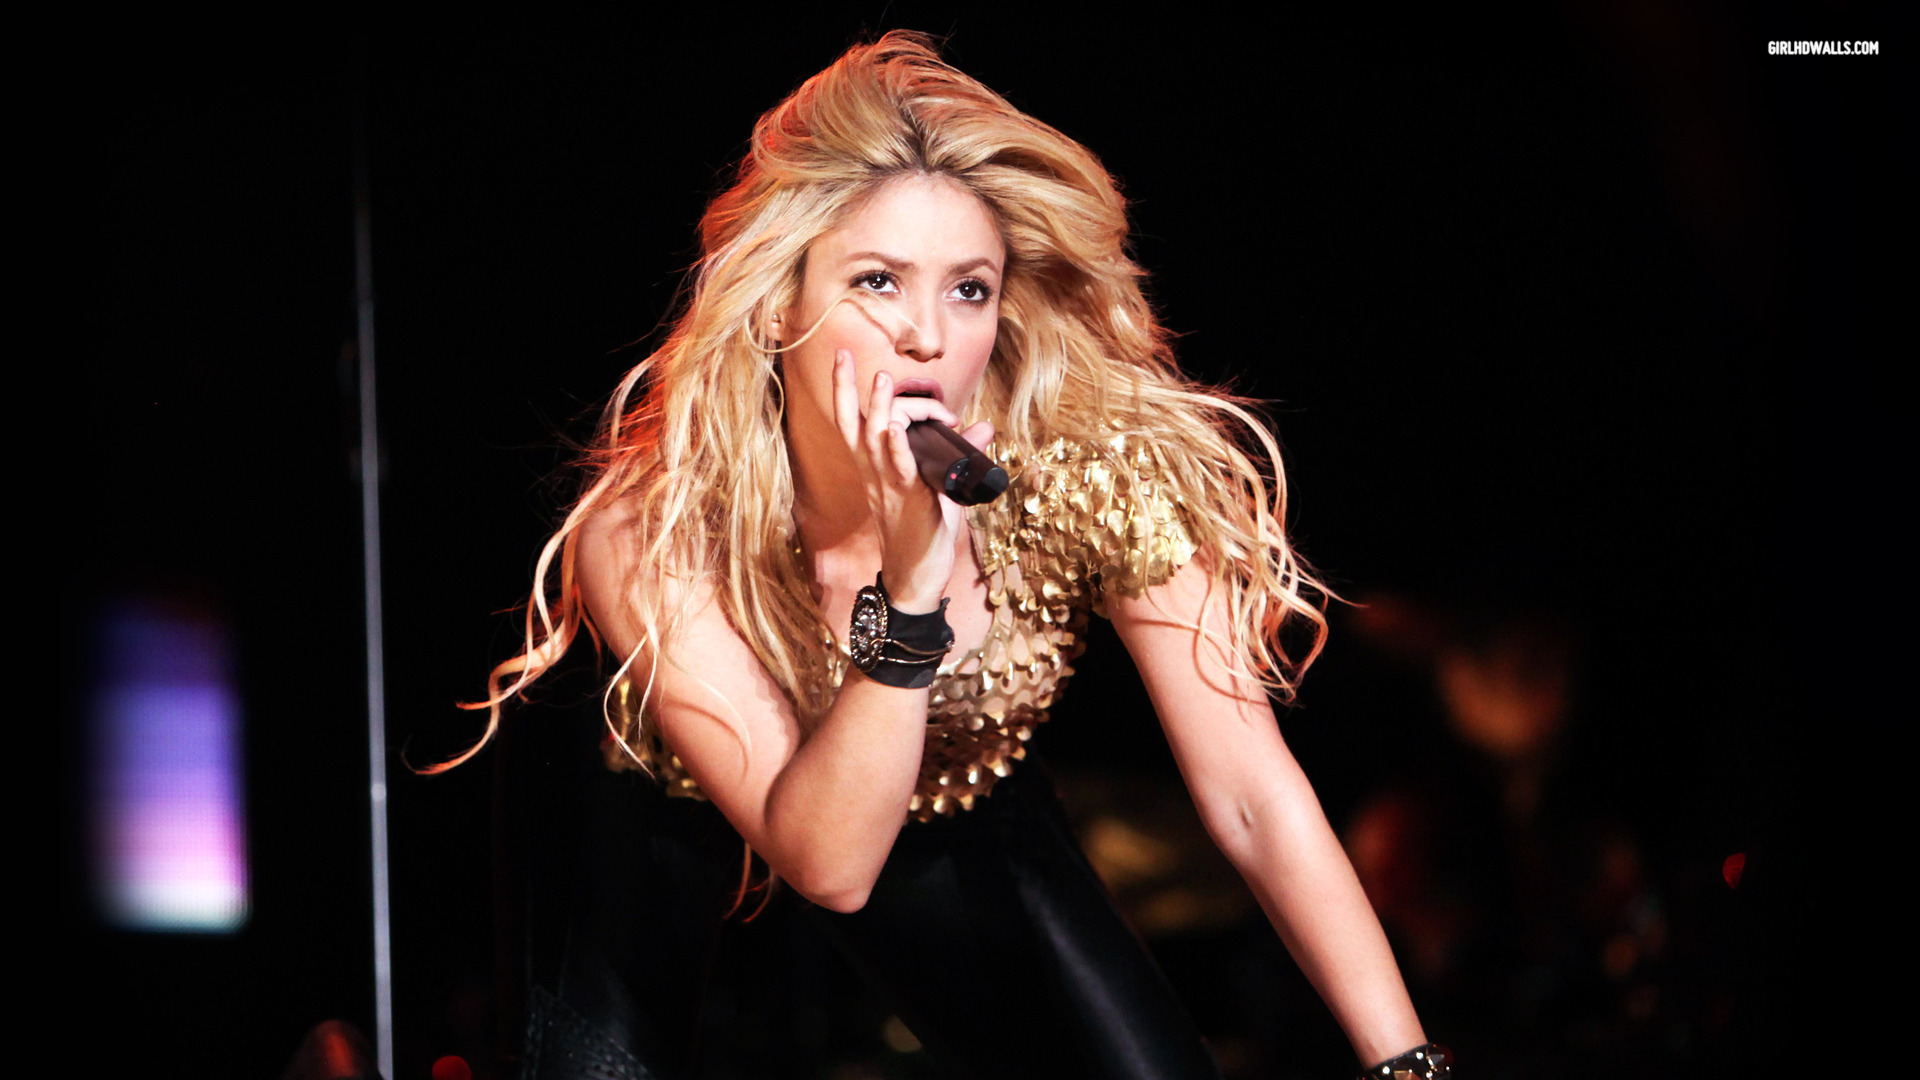 shakira wallpaper stage